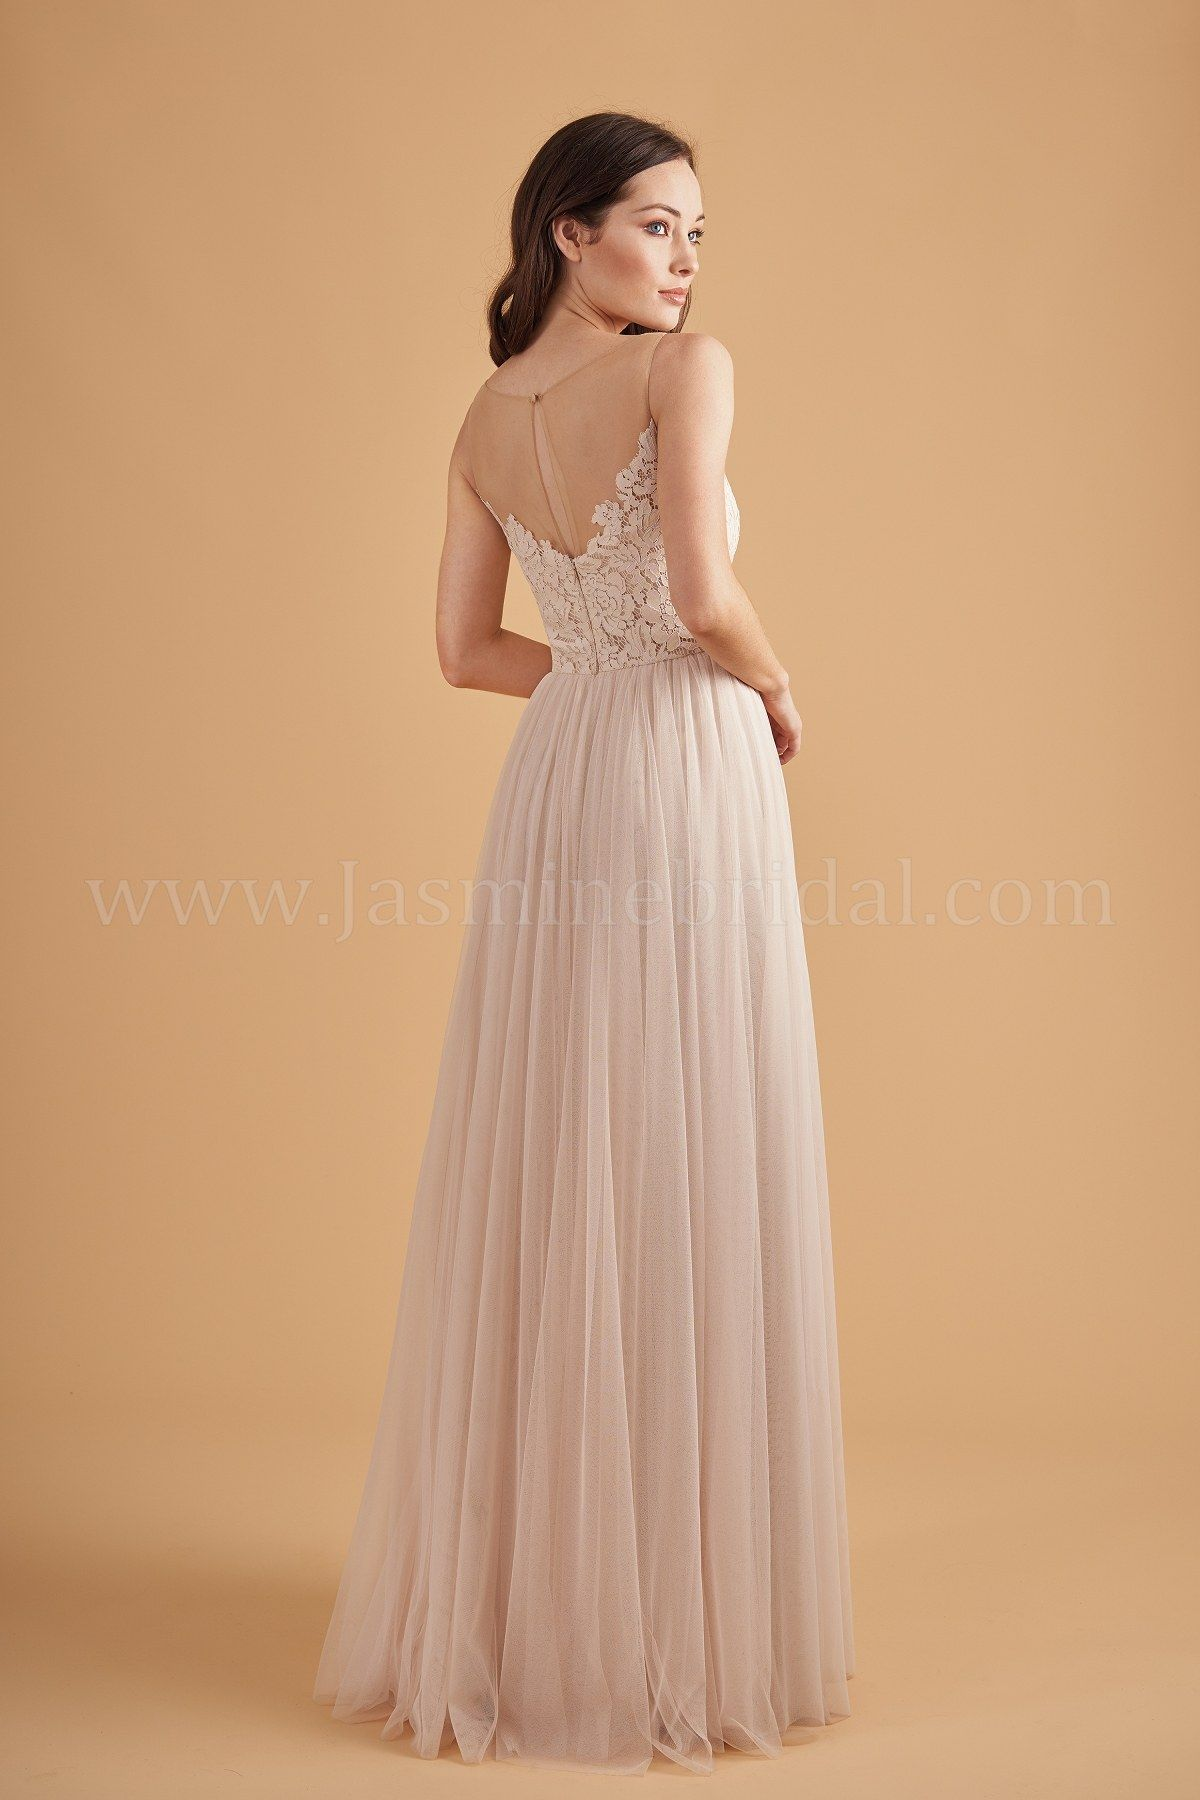 6ab2cafc6c Jasmine Bridal - Belsoie Bridesmaid Dress